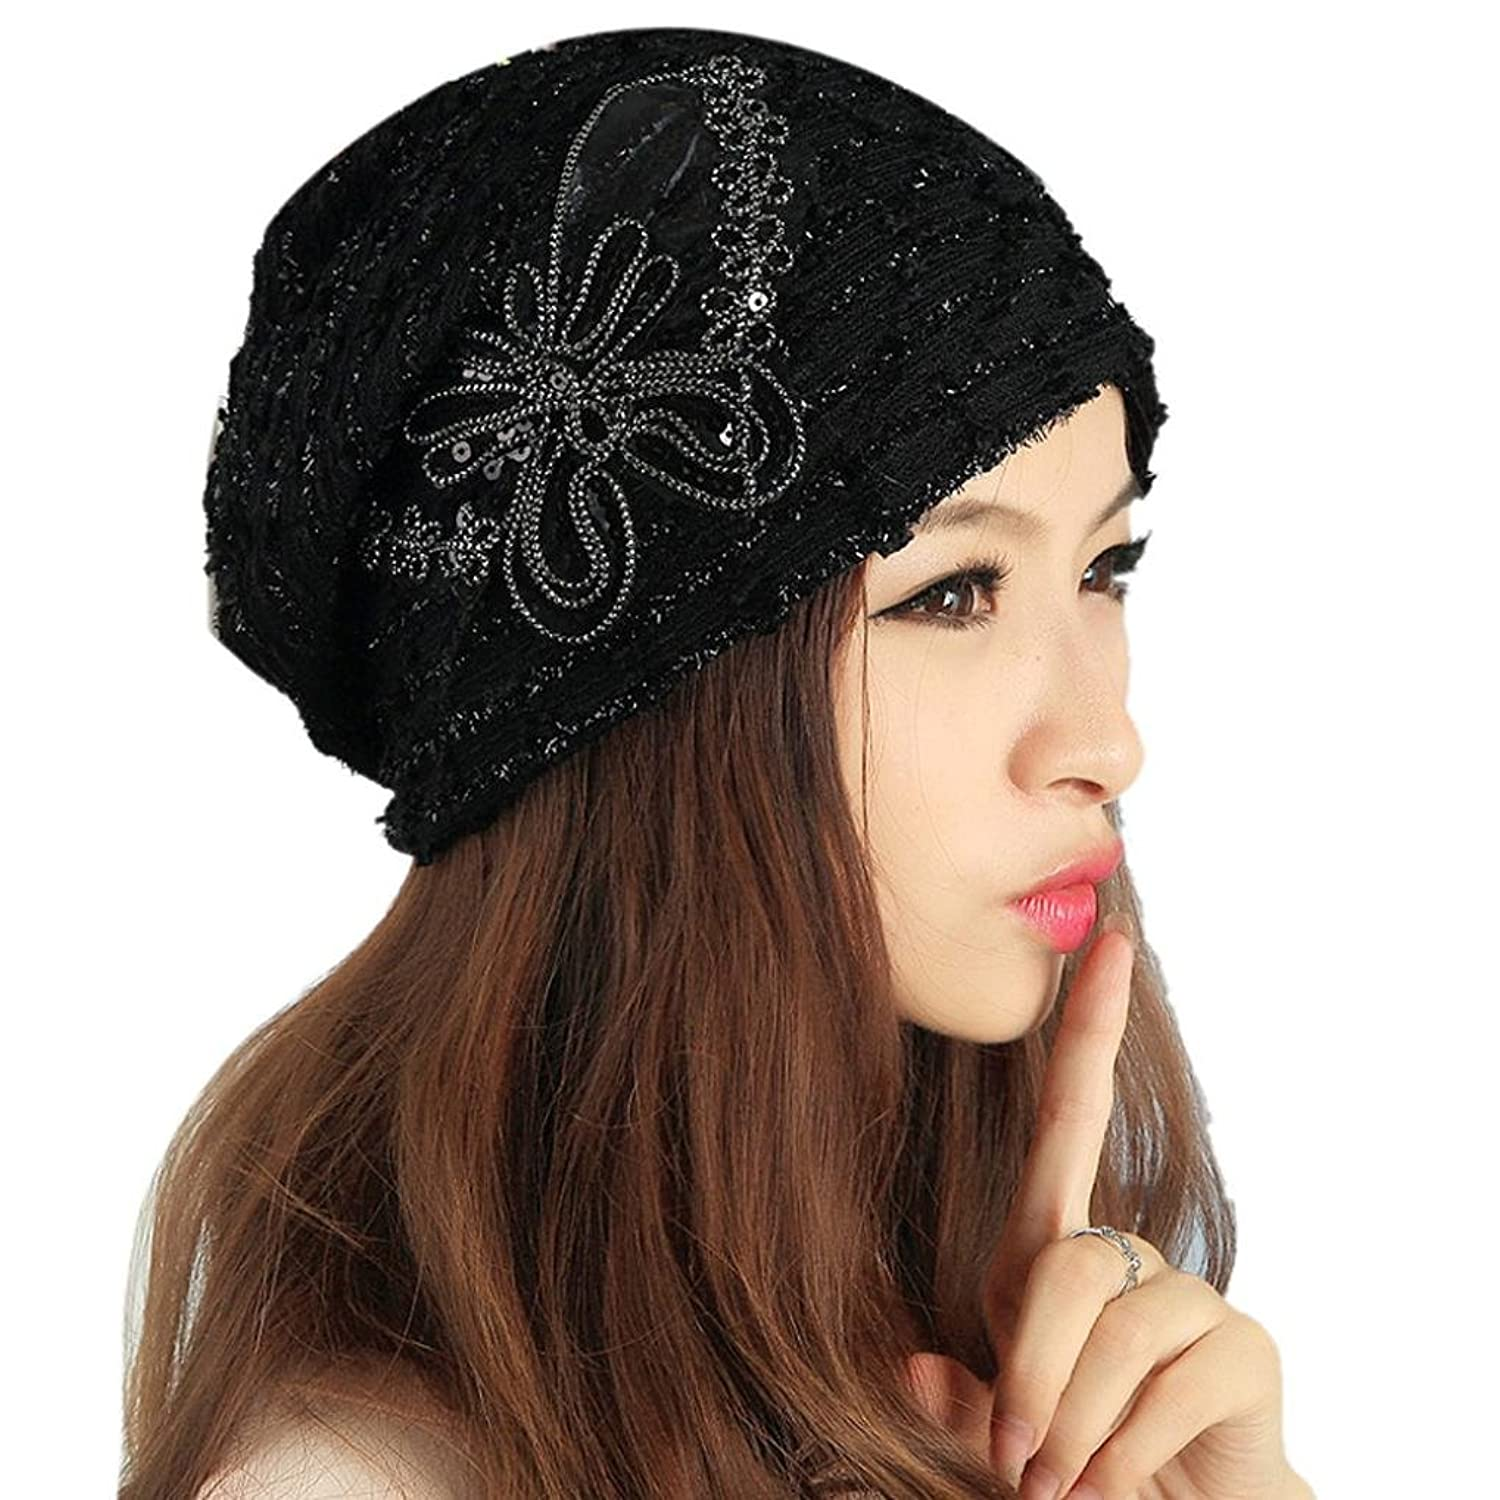 Haoricu Women Hat, Winter Women's Fashion Lace Butterfly Sequins Snapback Ladies Turban Cap